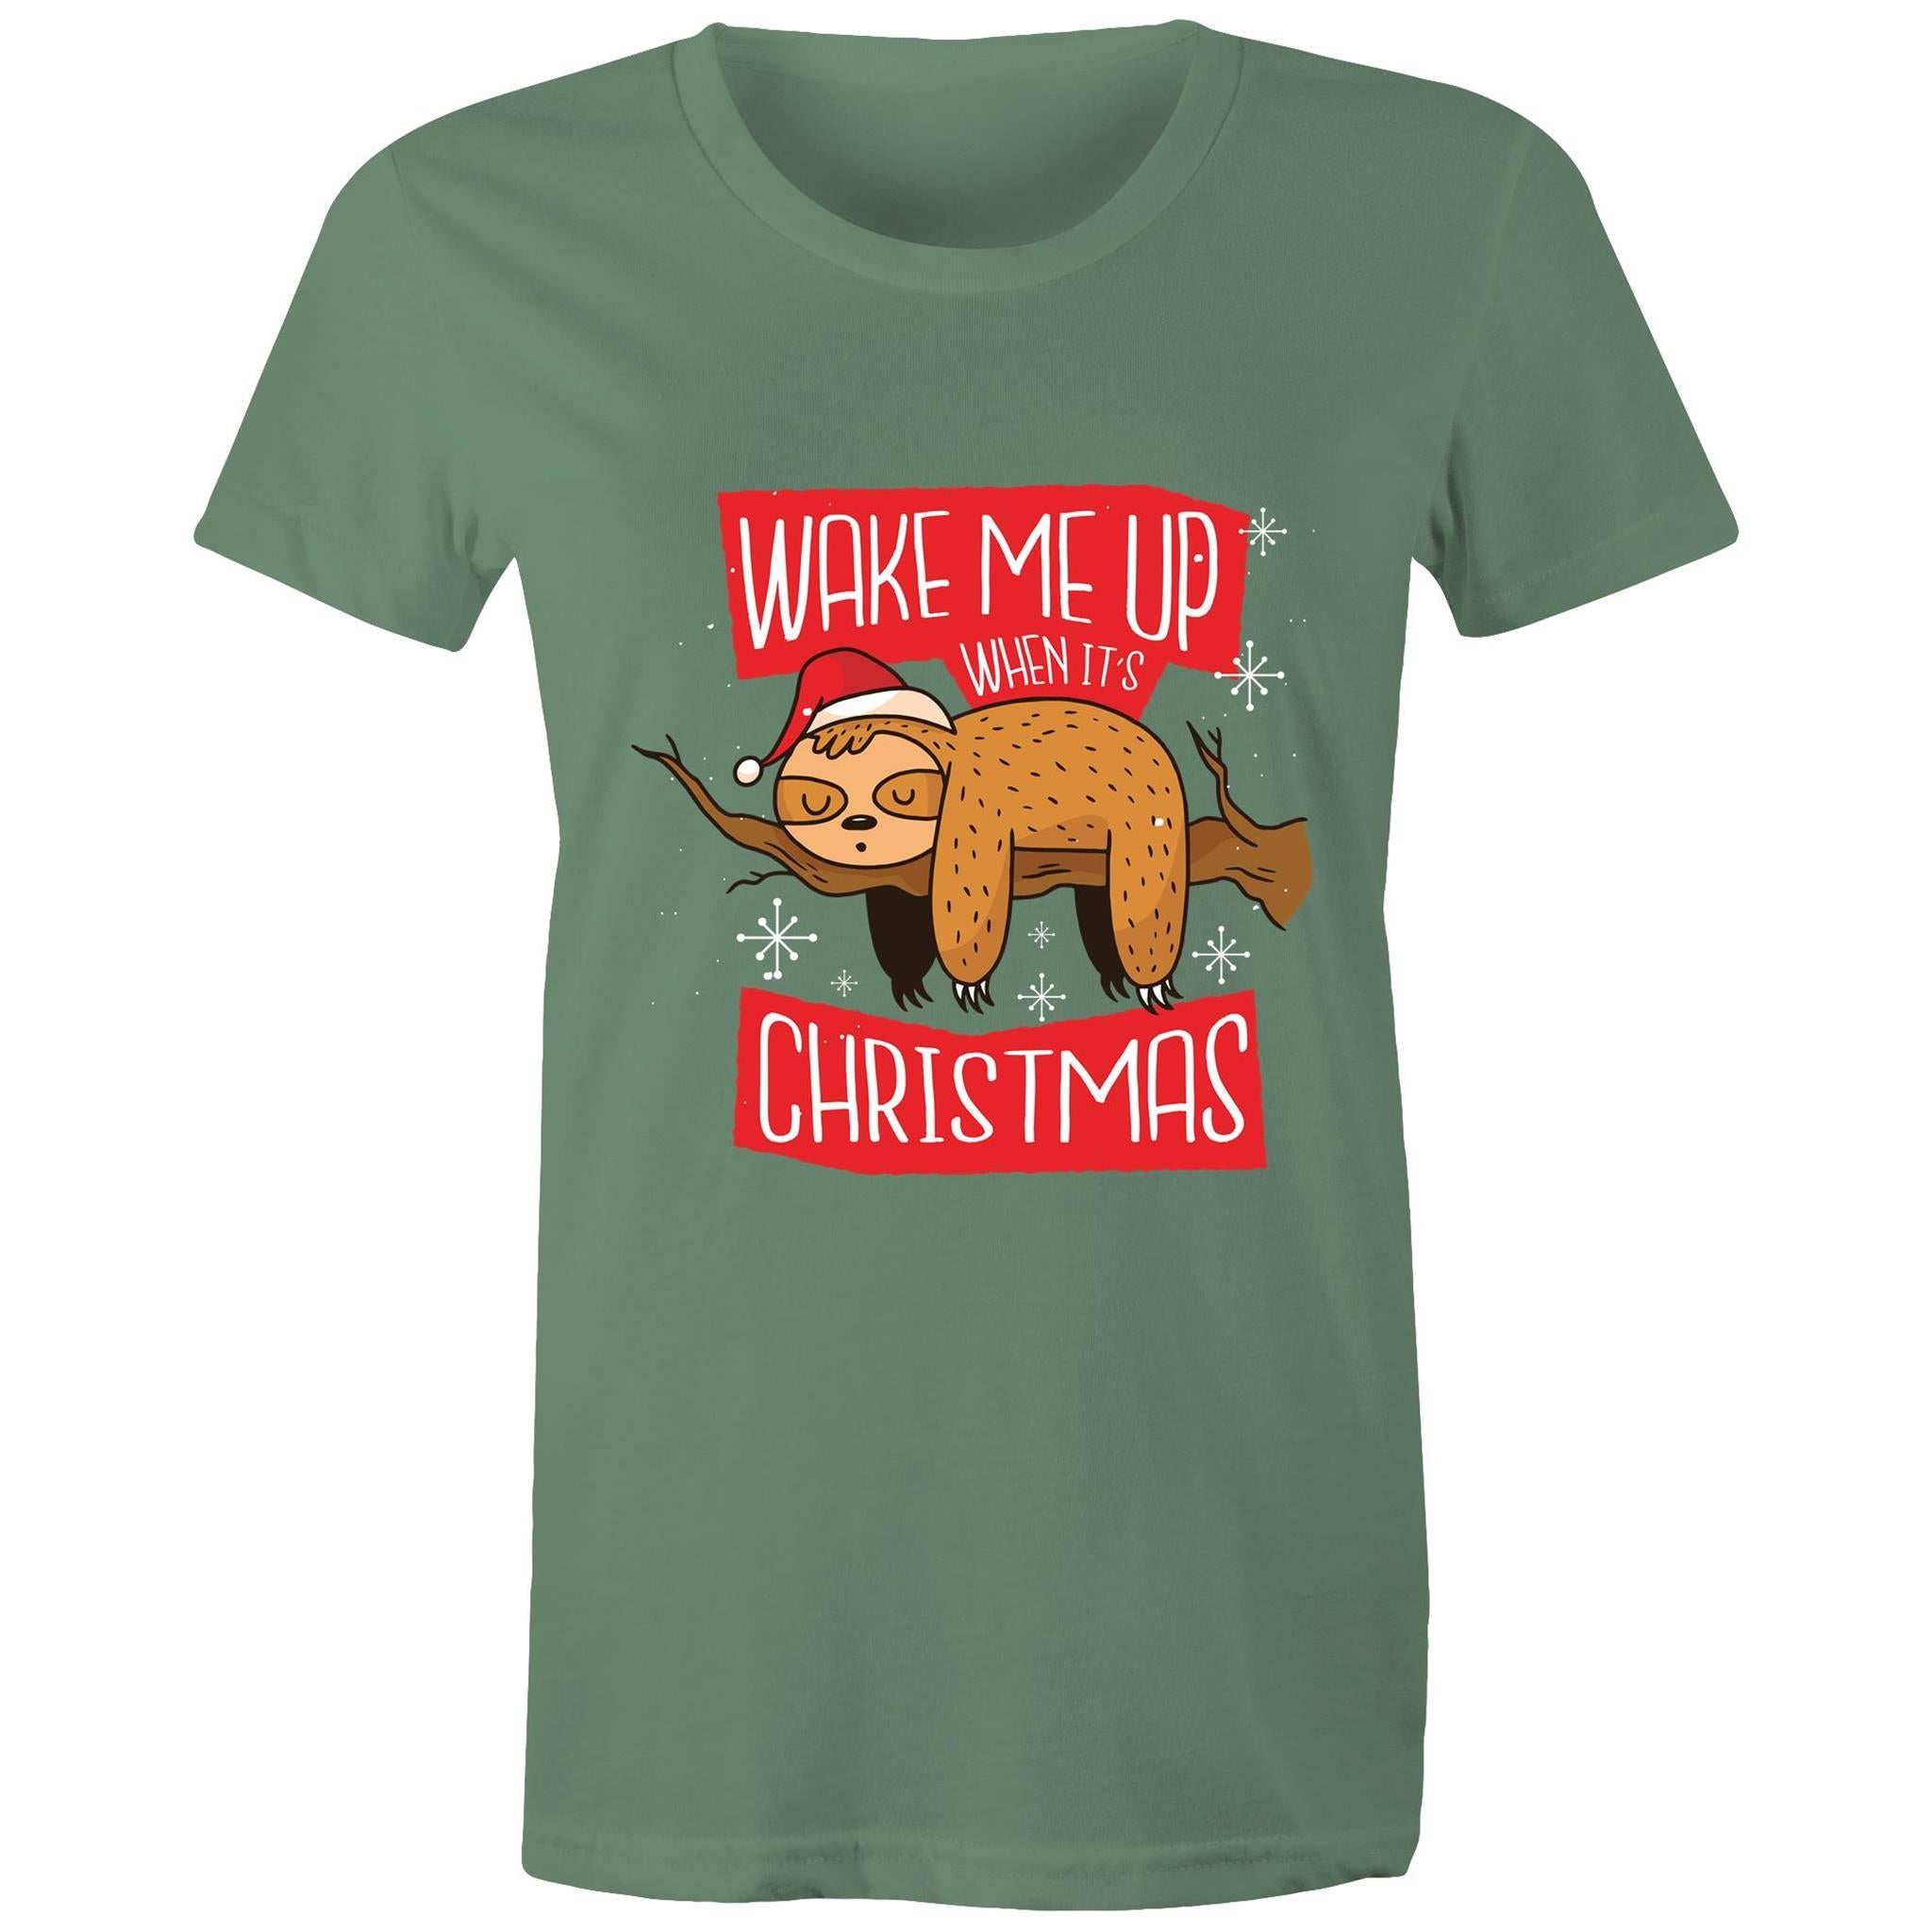 Wake me up when it's Christmas (Womens XS - 2XL)